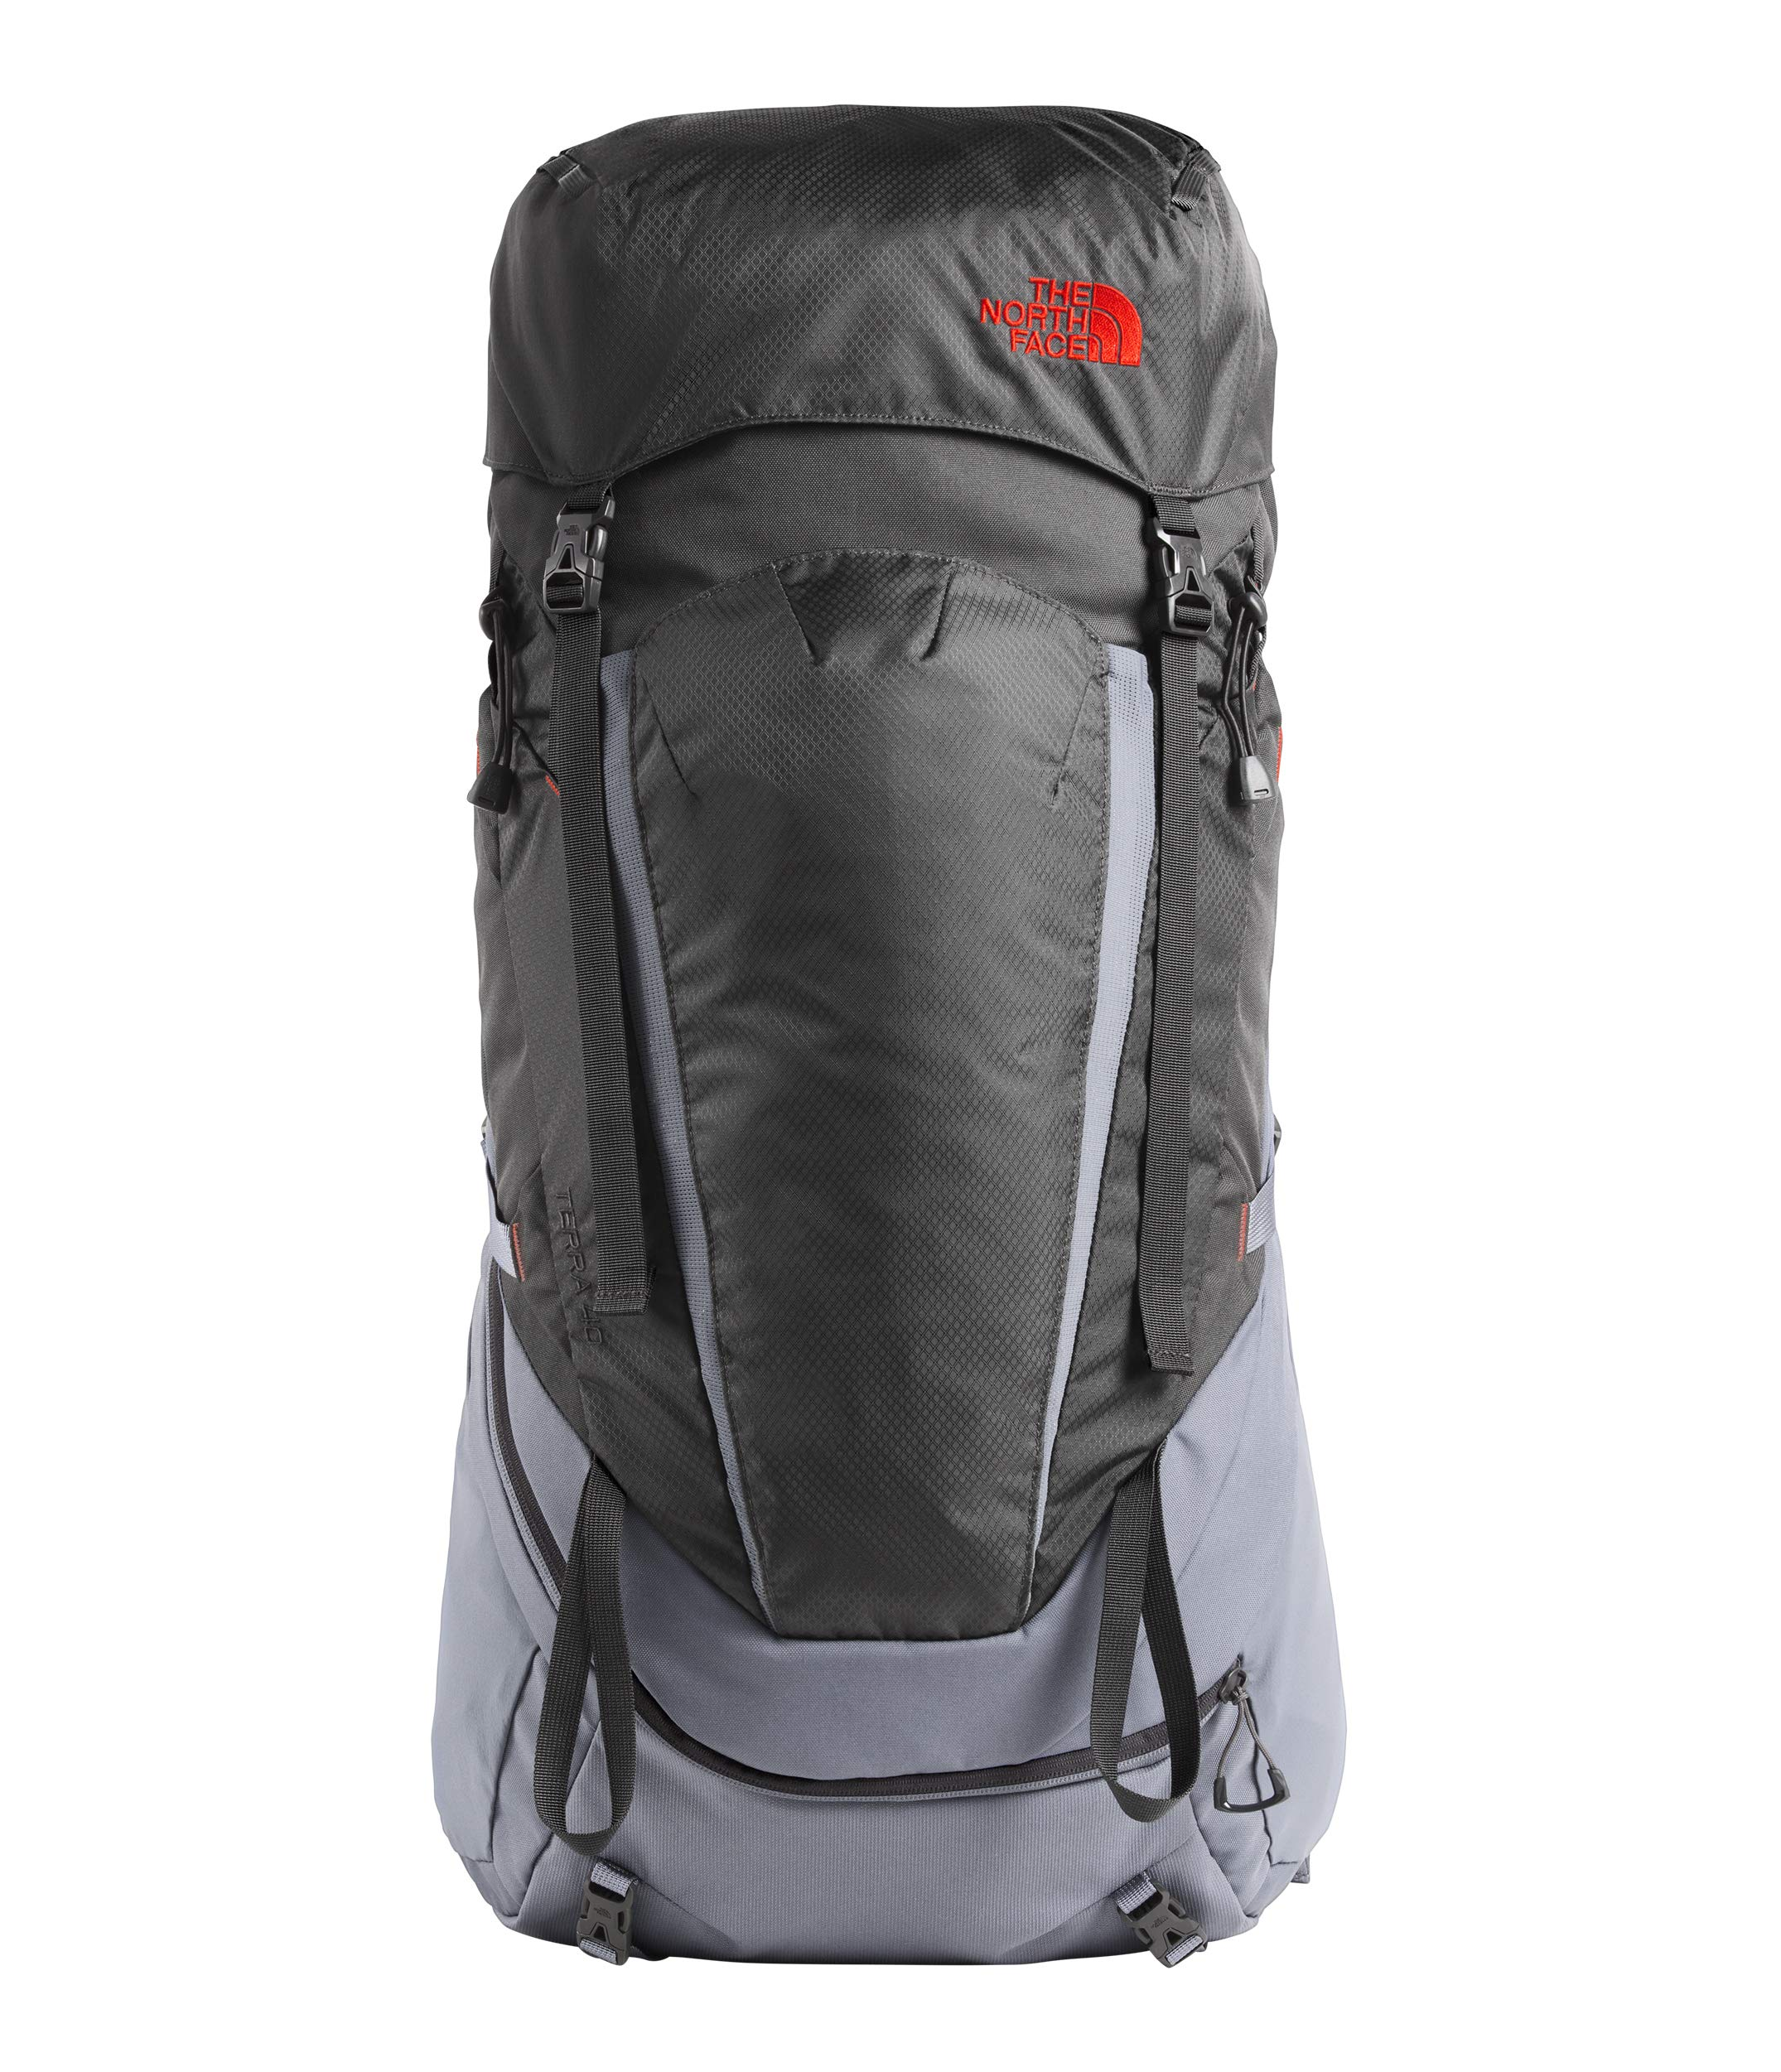 The North Face Terra 40, Grisaille Grey/Asphalt Grey, Large/X-Large